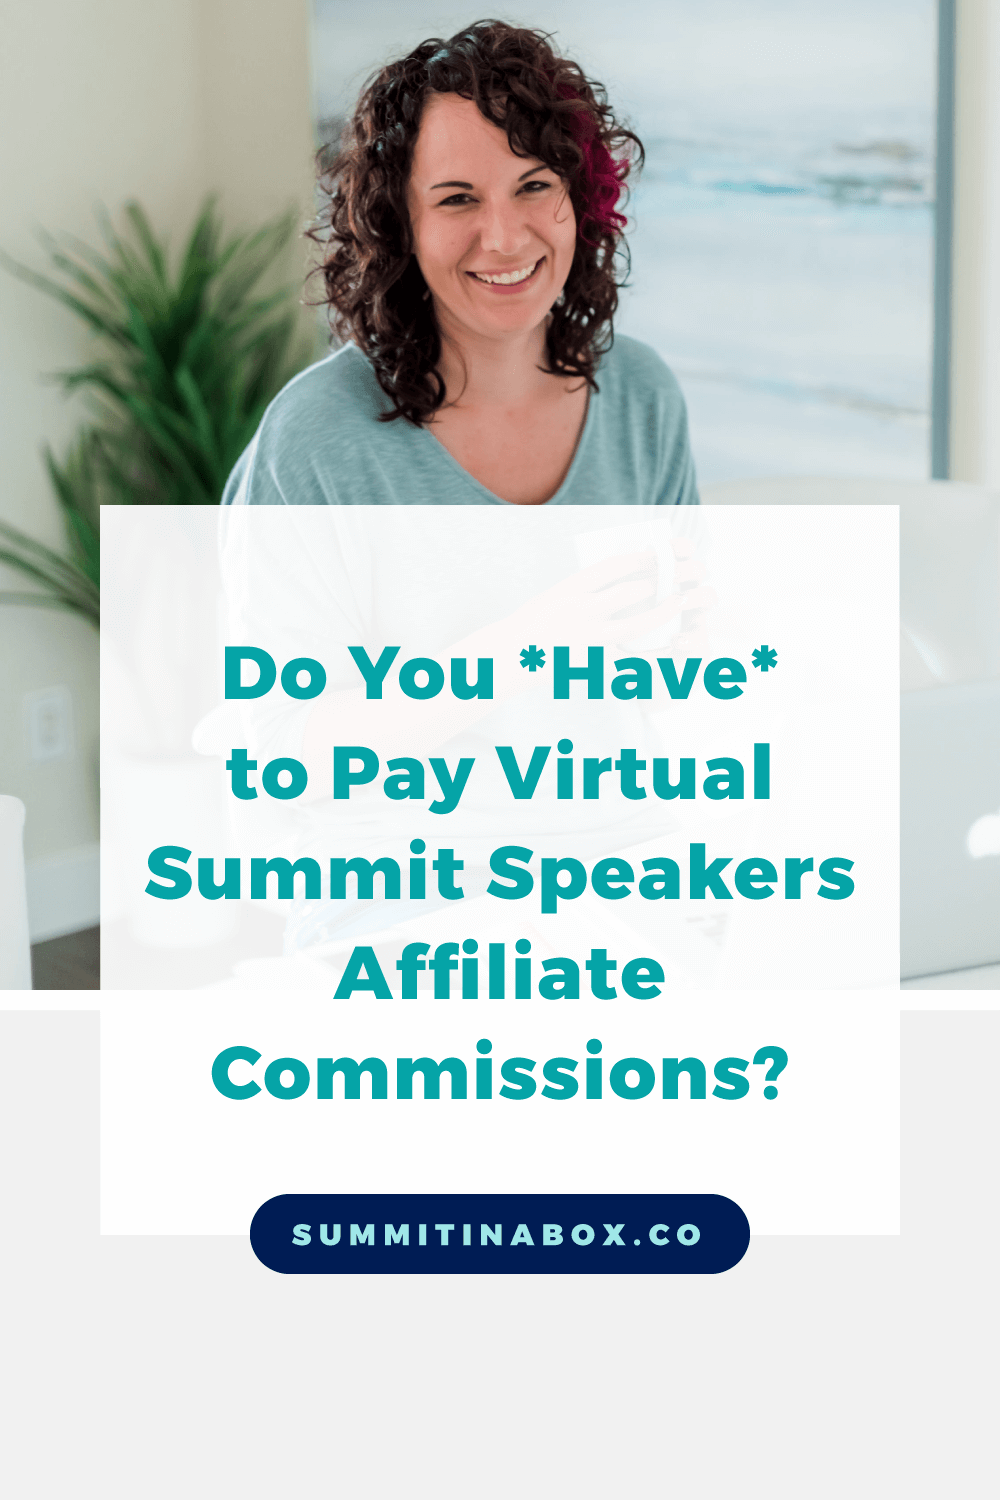 Do I have to pay my virtual summit speakers affiliate commissions? Let's cover whether it's a requirement, why, and how to overcome any hurdles with it.